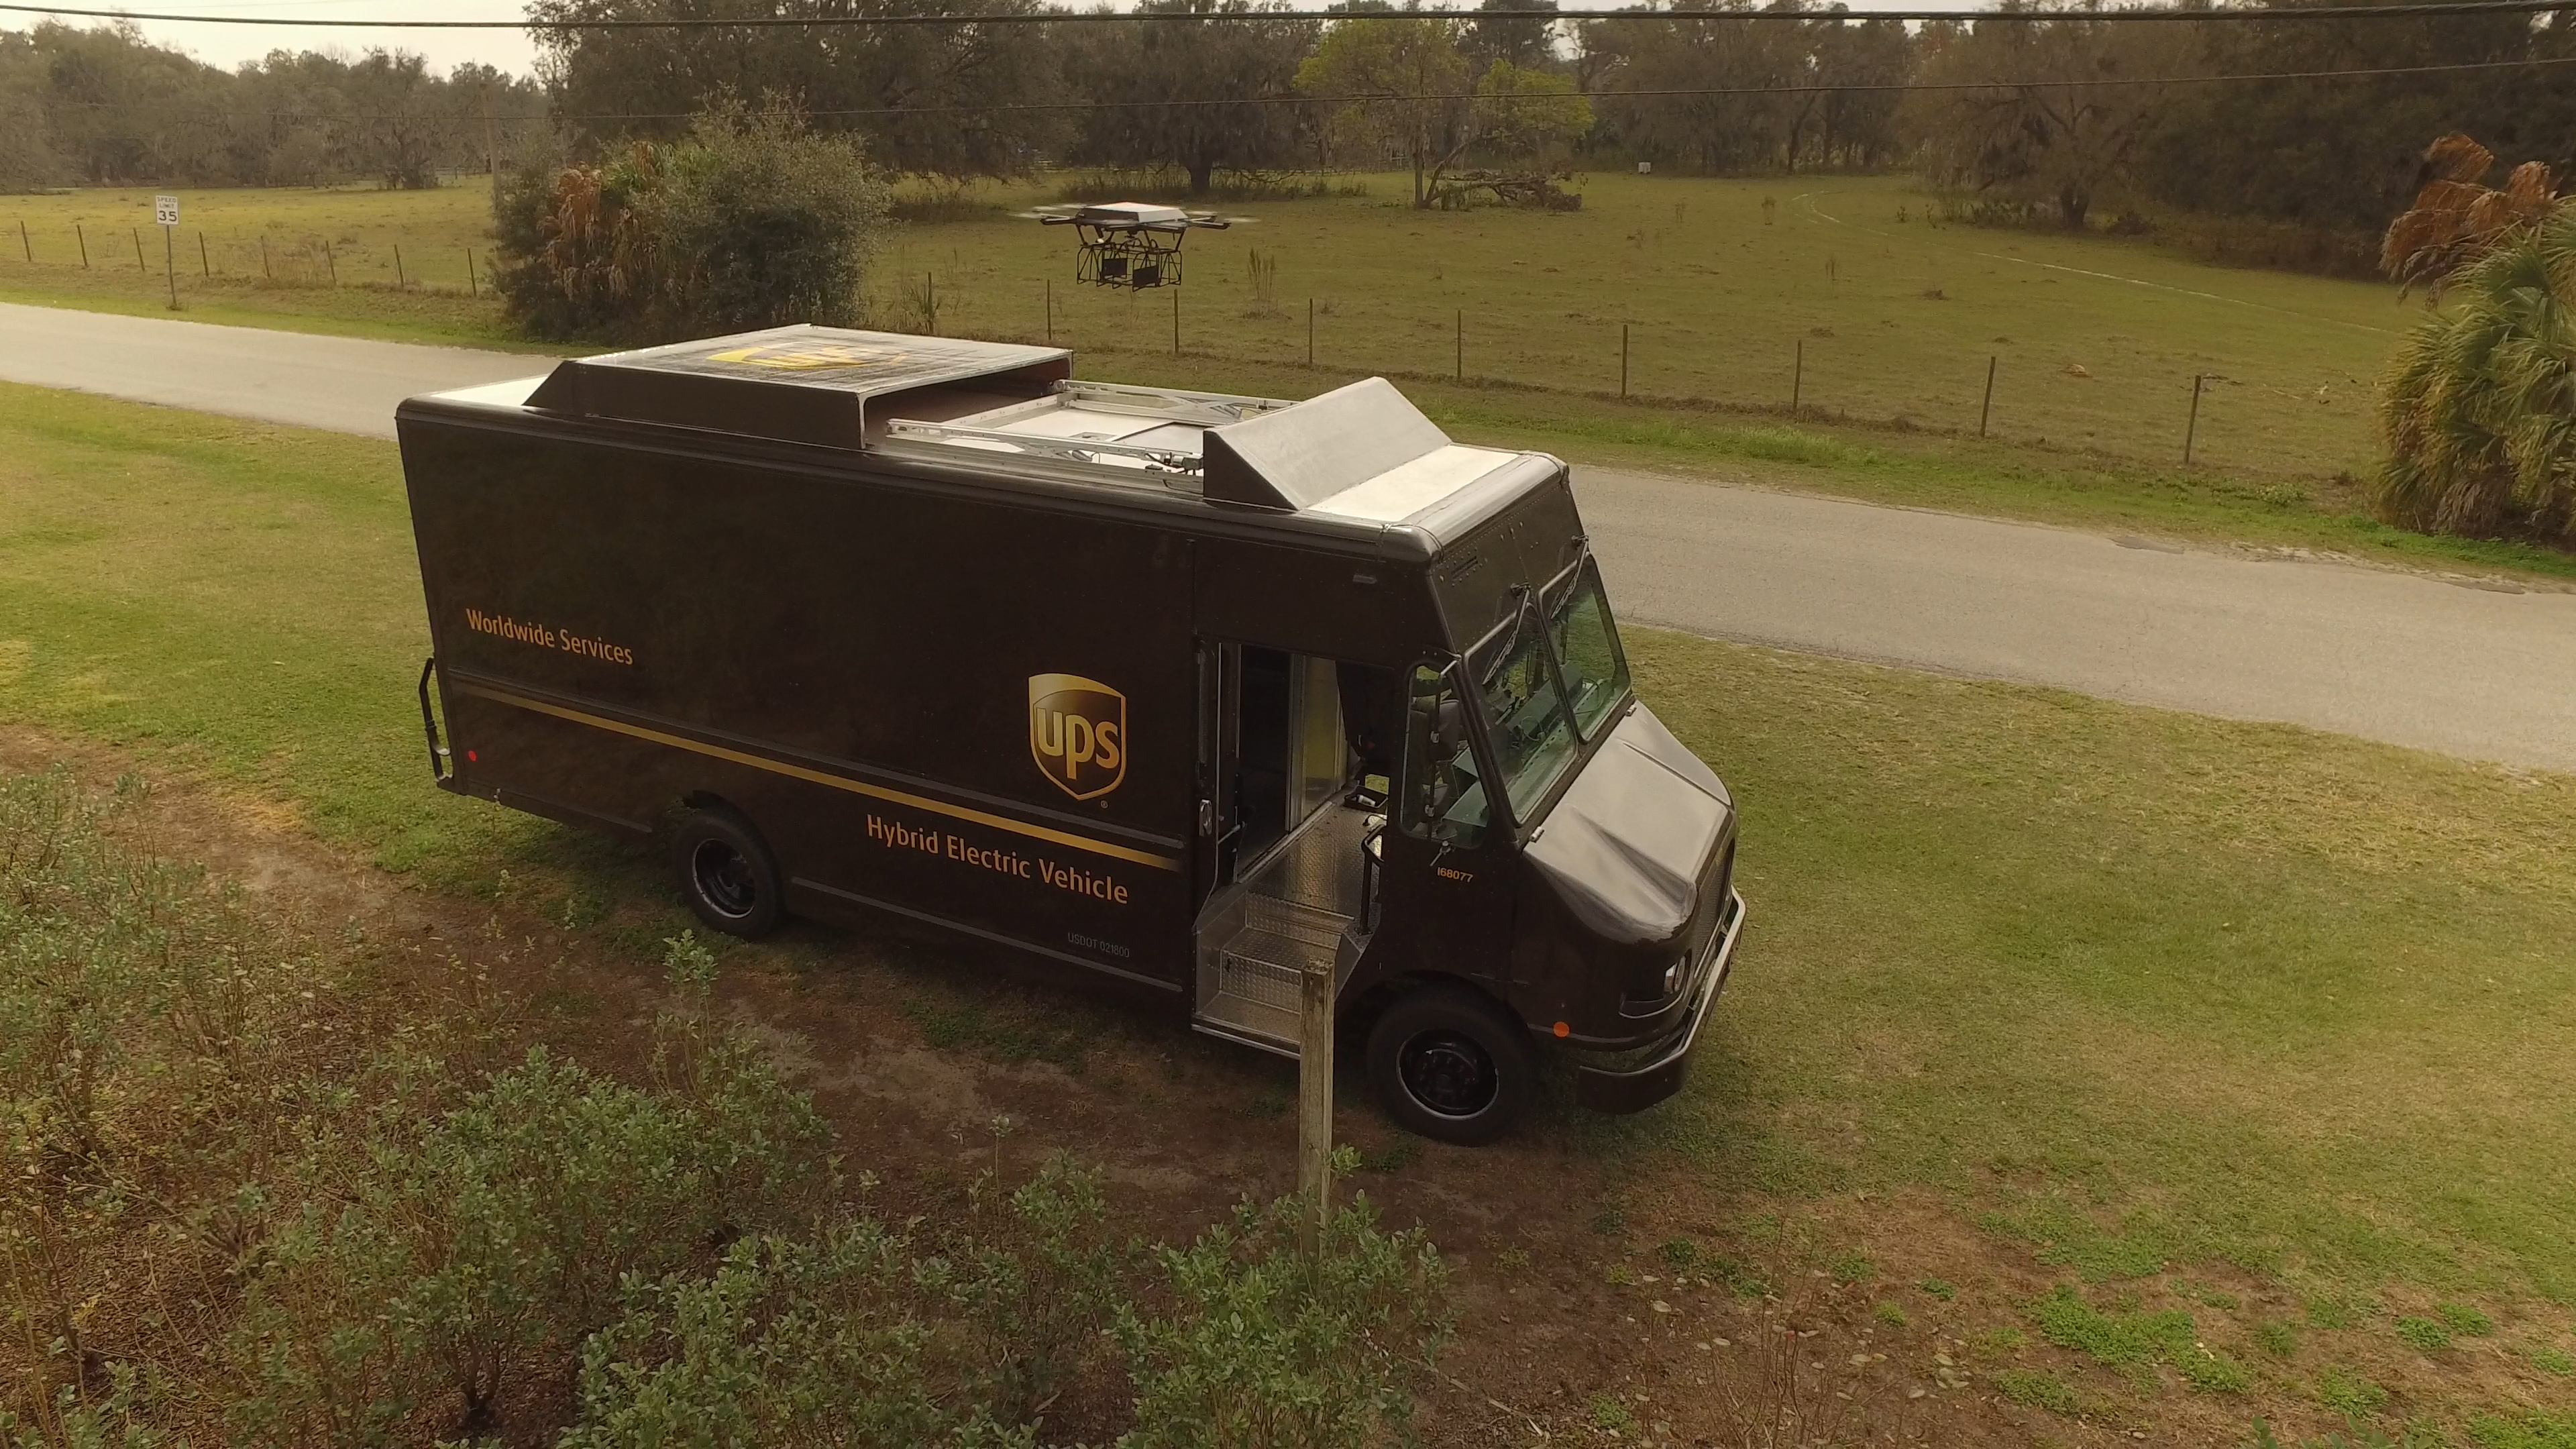 ups-florida-footage-01_09_25_00-still071